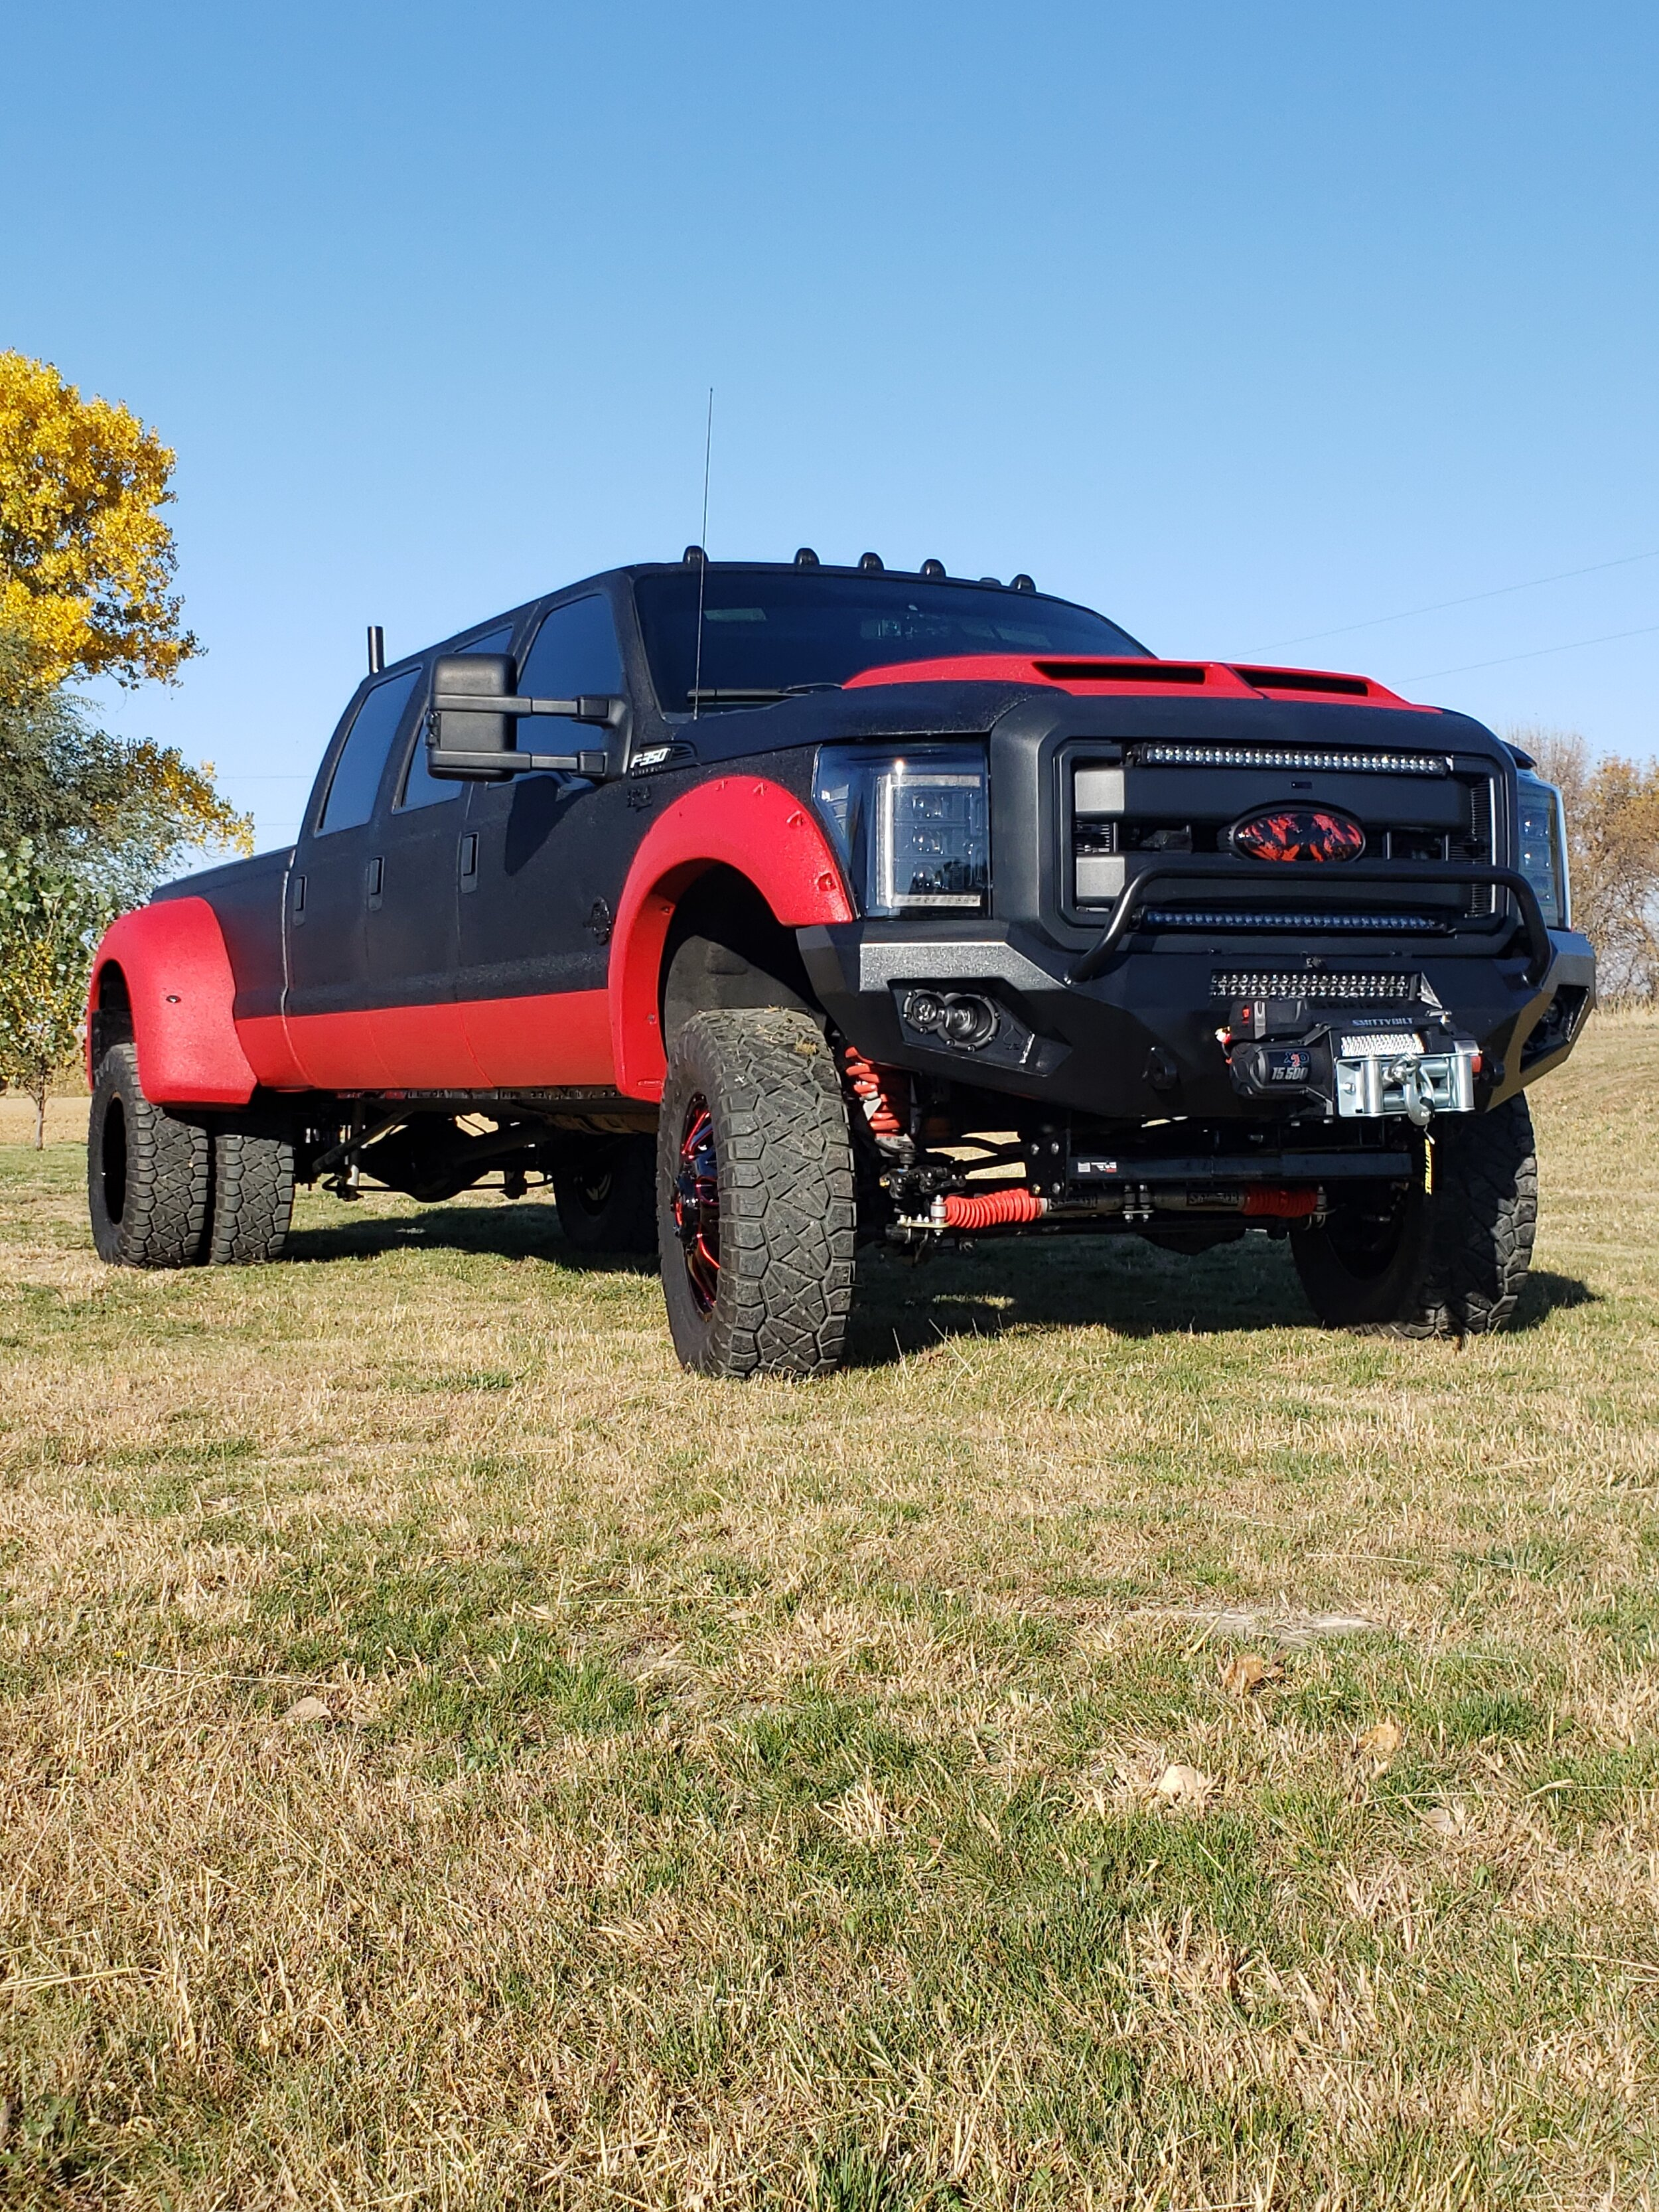 6 Door Truck : truck, Black, Series, Dually, Truck, SERIES, CUSTOM, PICKUPS